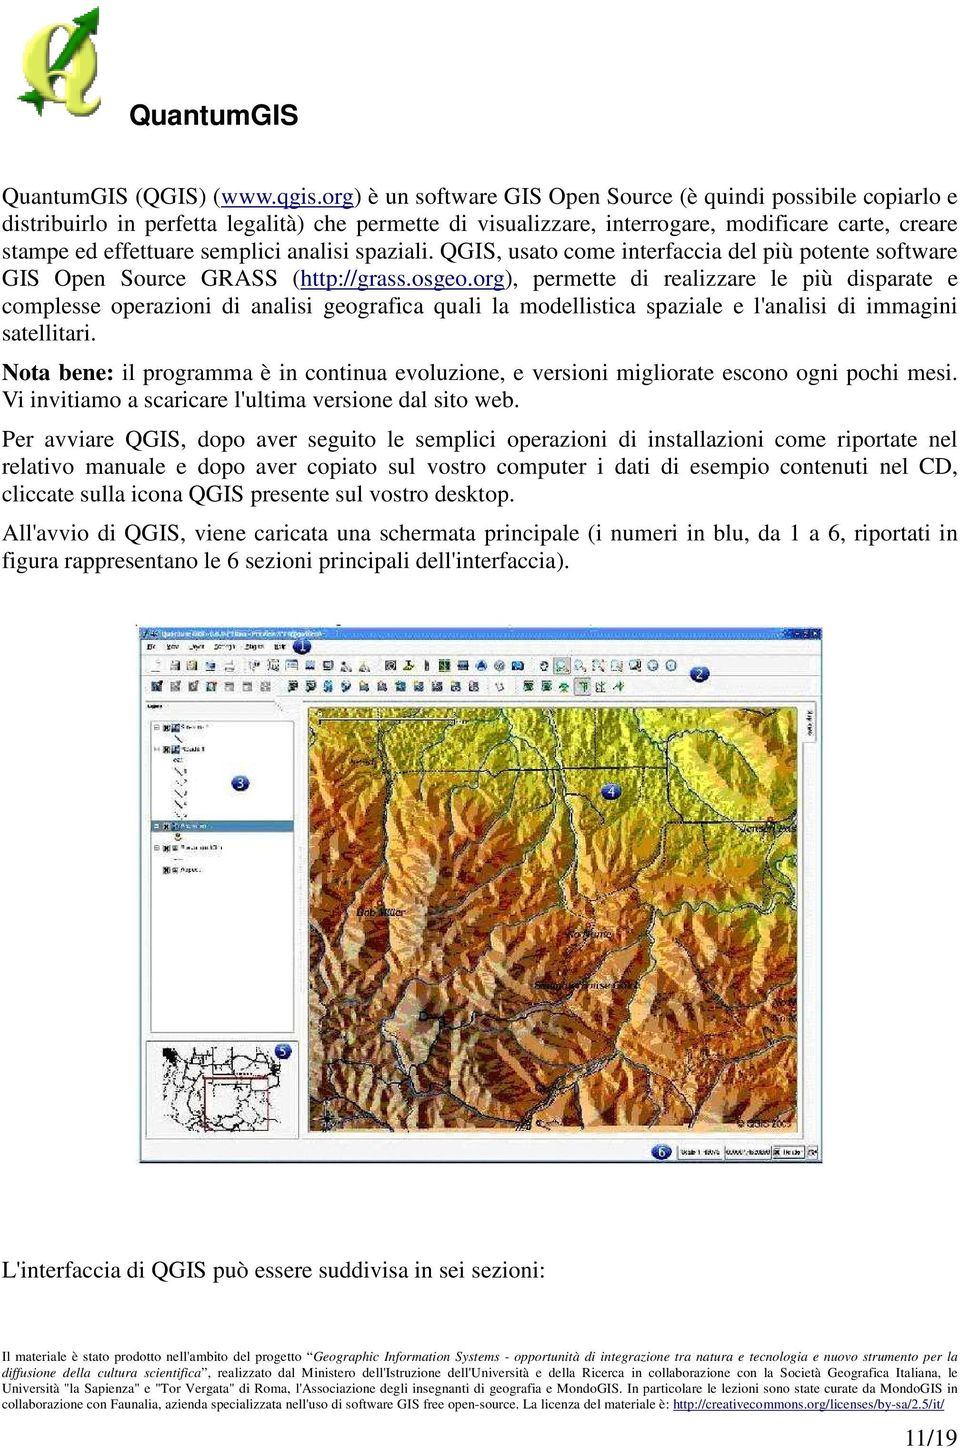 analisi spaziali. QGIS, usato come interfaccia del più potente software GIS Open Source GRASS (http://grass.osgeo.